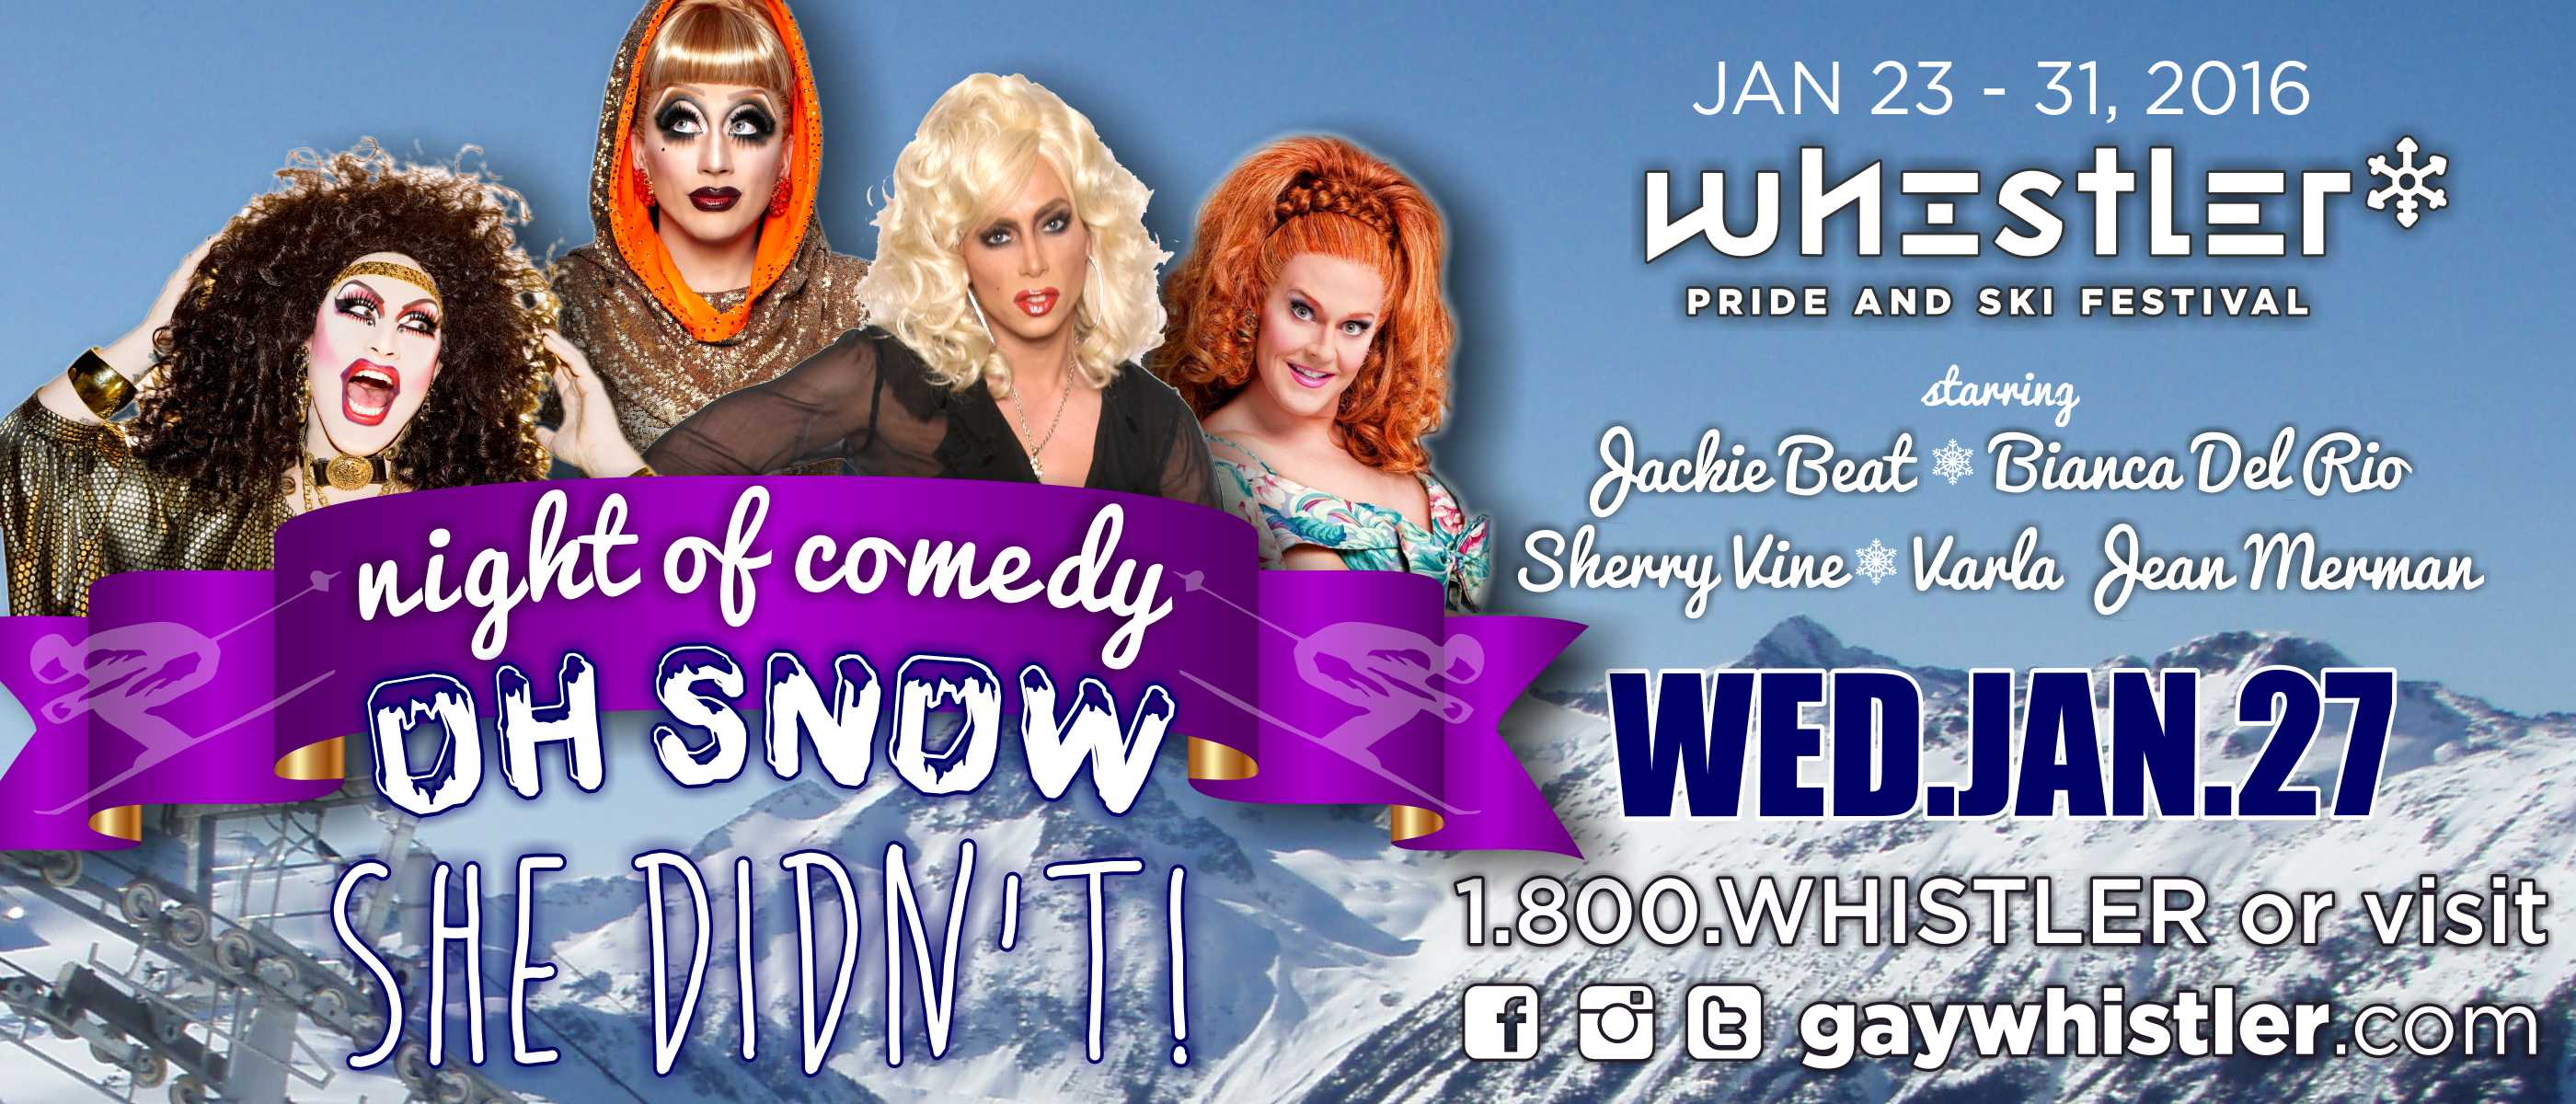 Oh Snow She Didnt Comedy Show at Whistler Pride